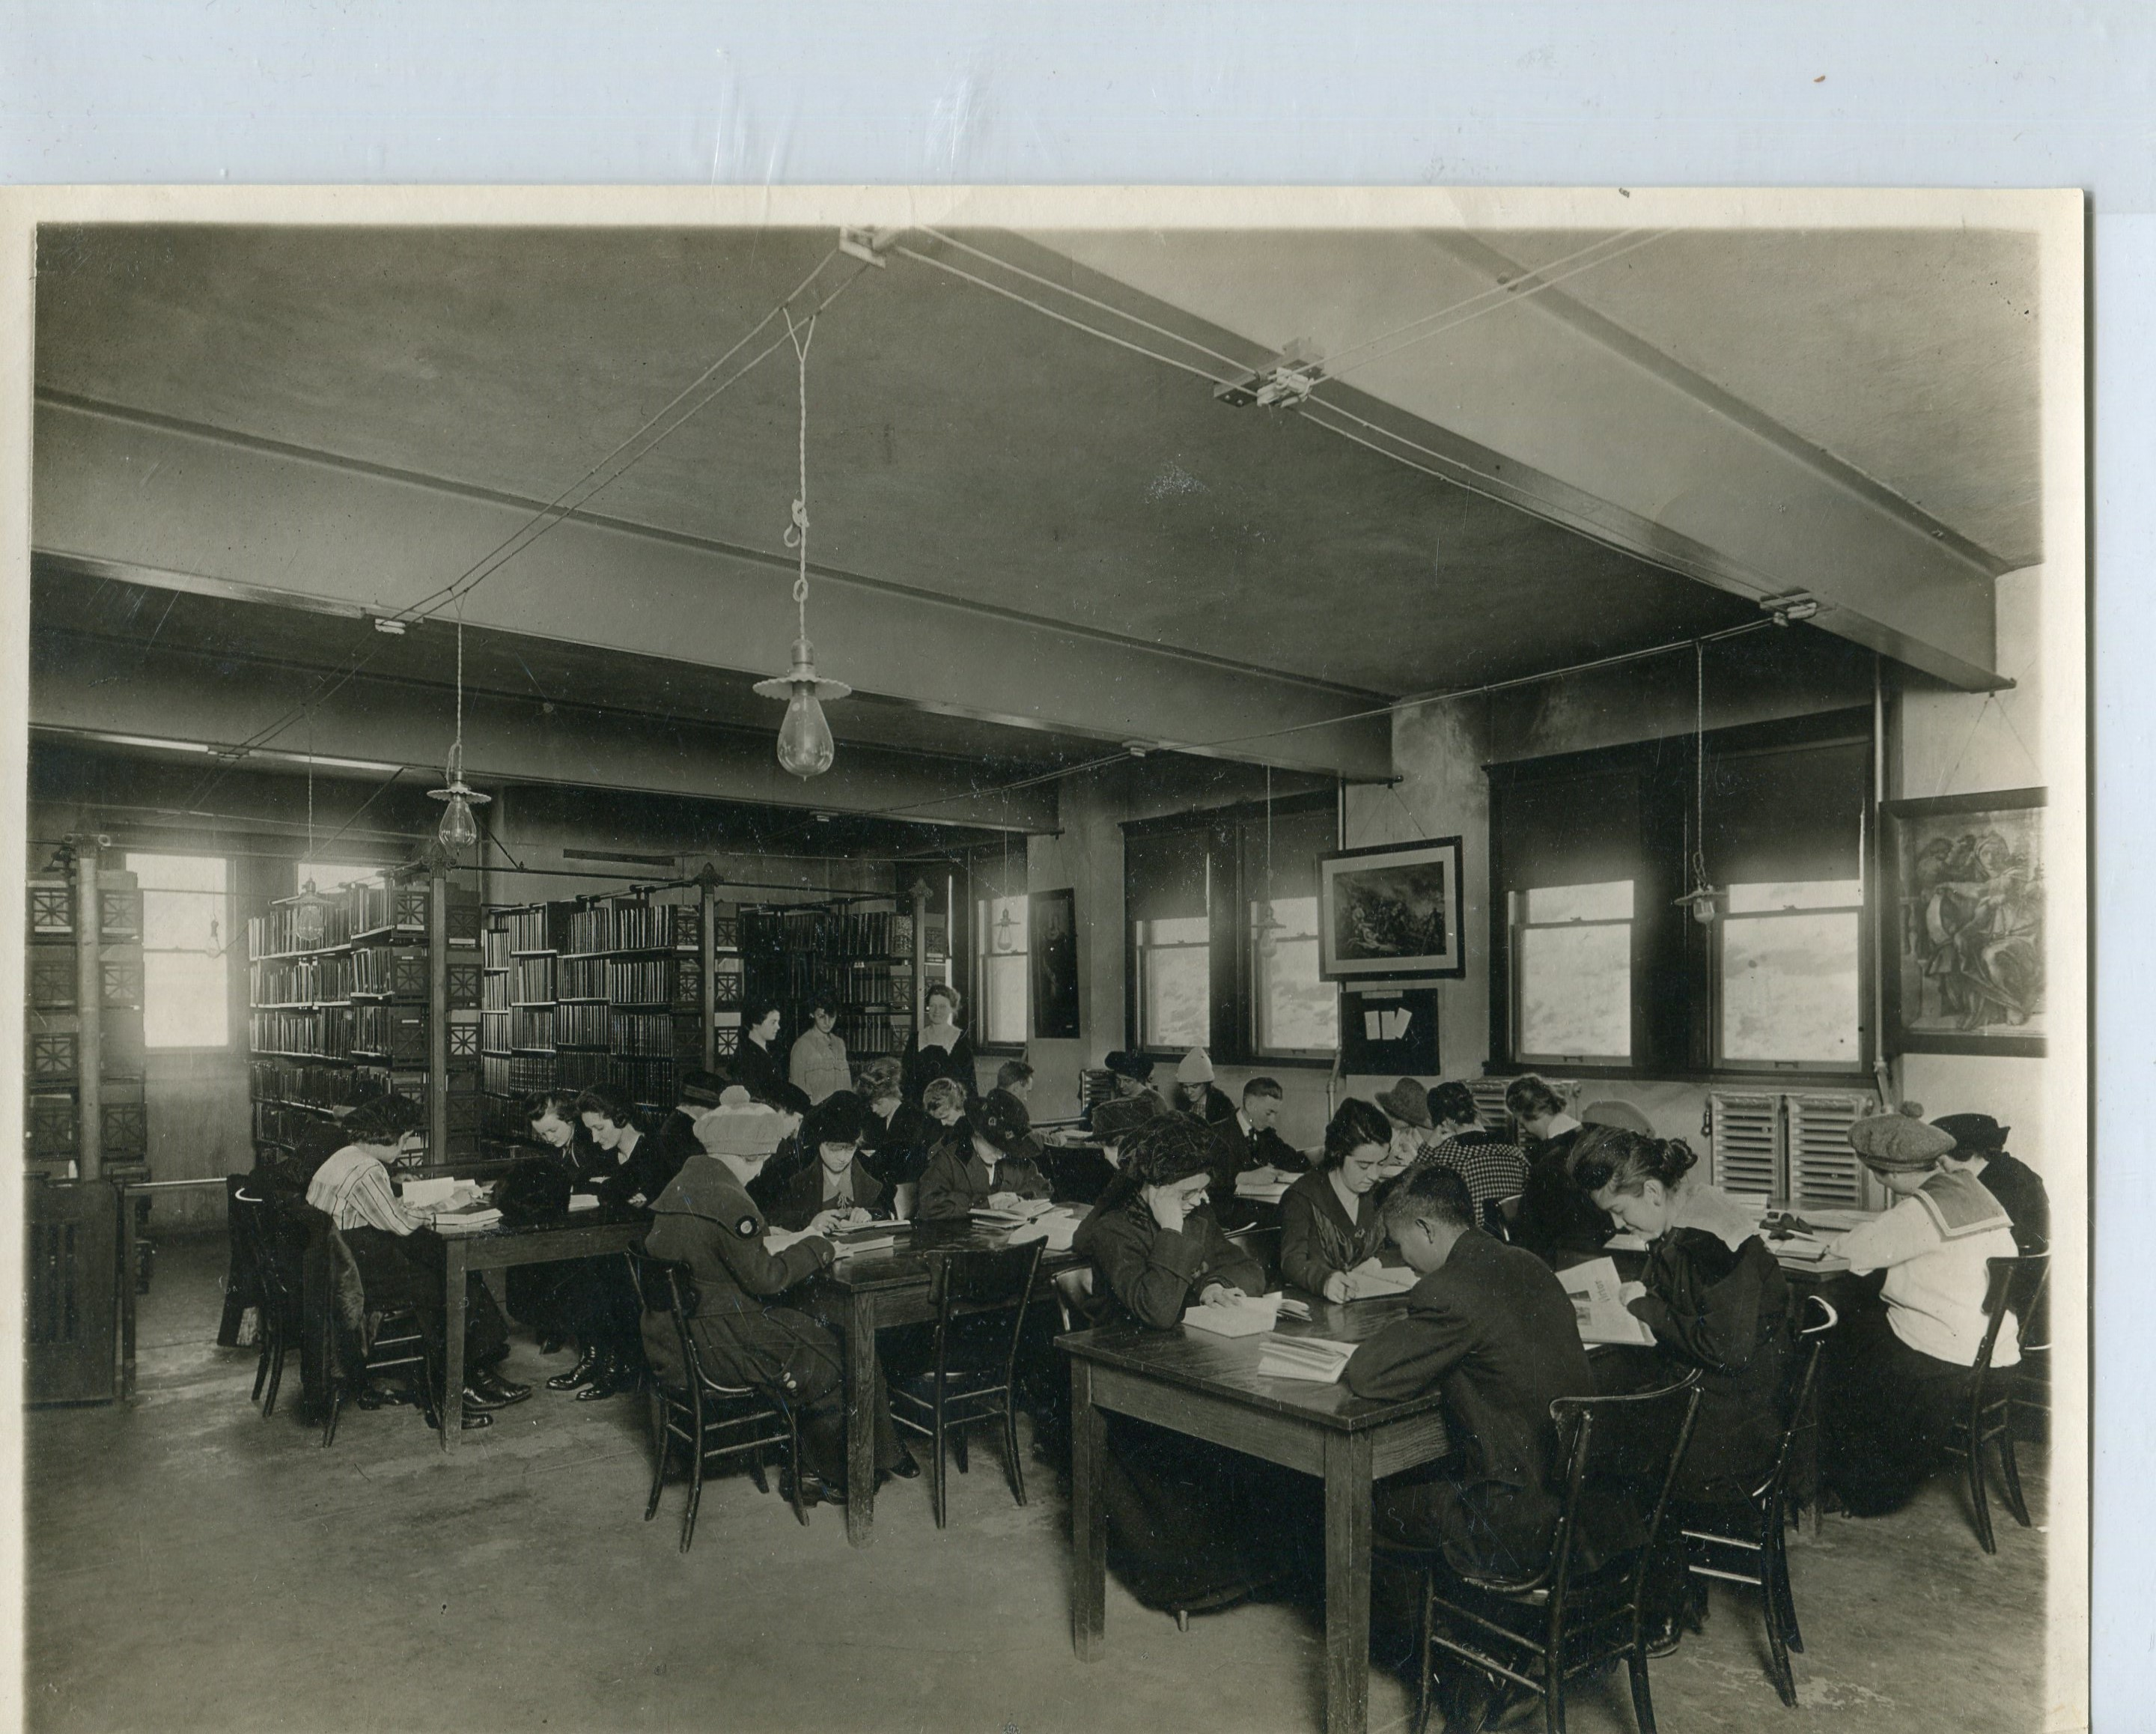 One of the library's reading rooms